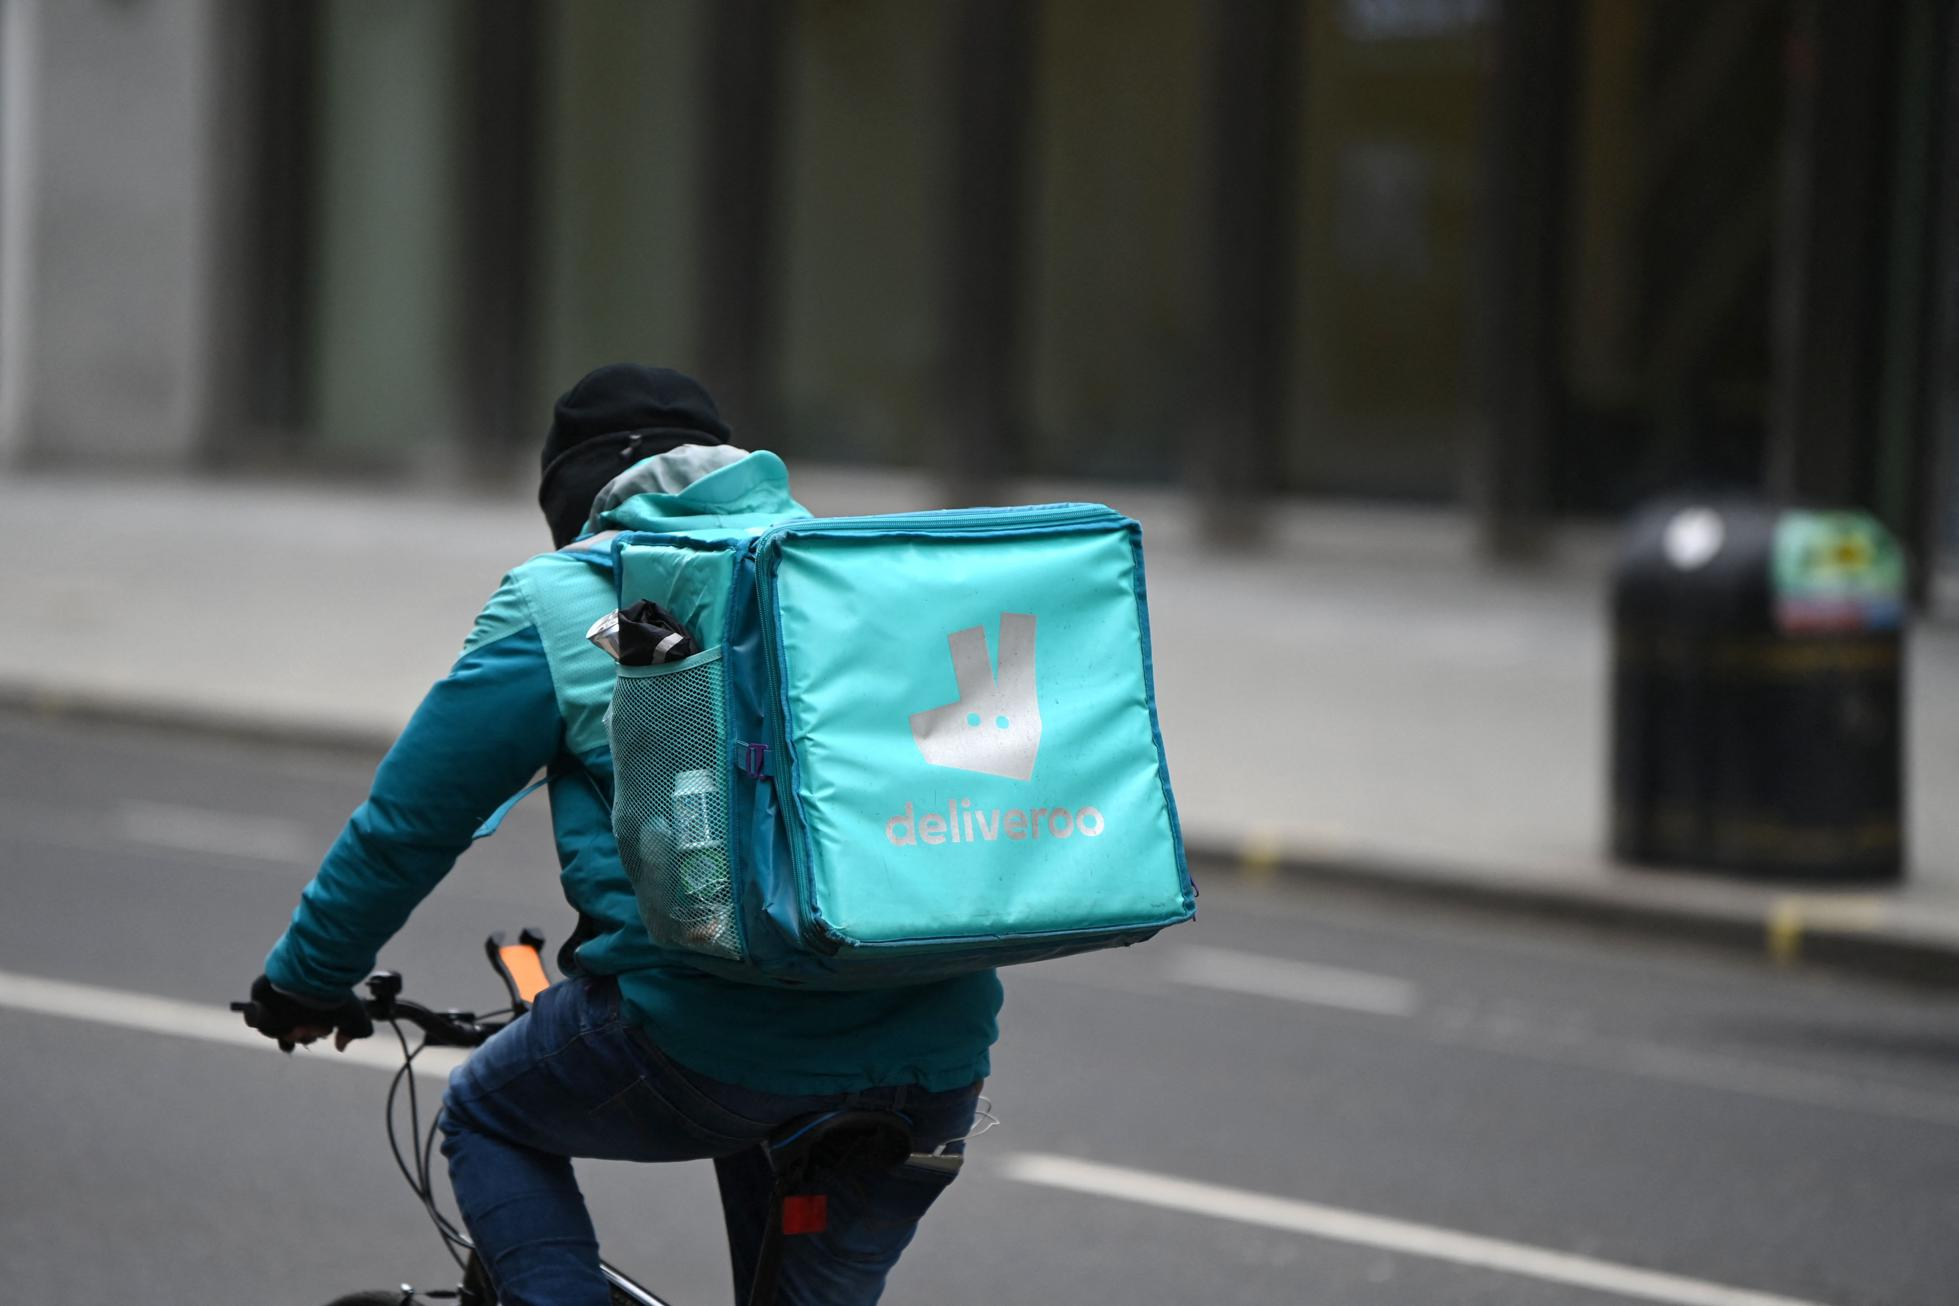 A Deliveroo courier in London ahead of the company's disappointing IPO.